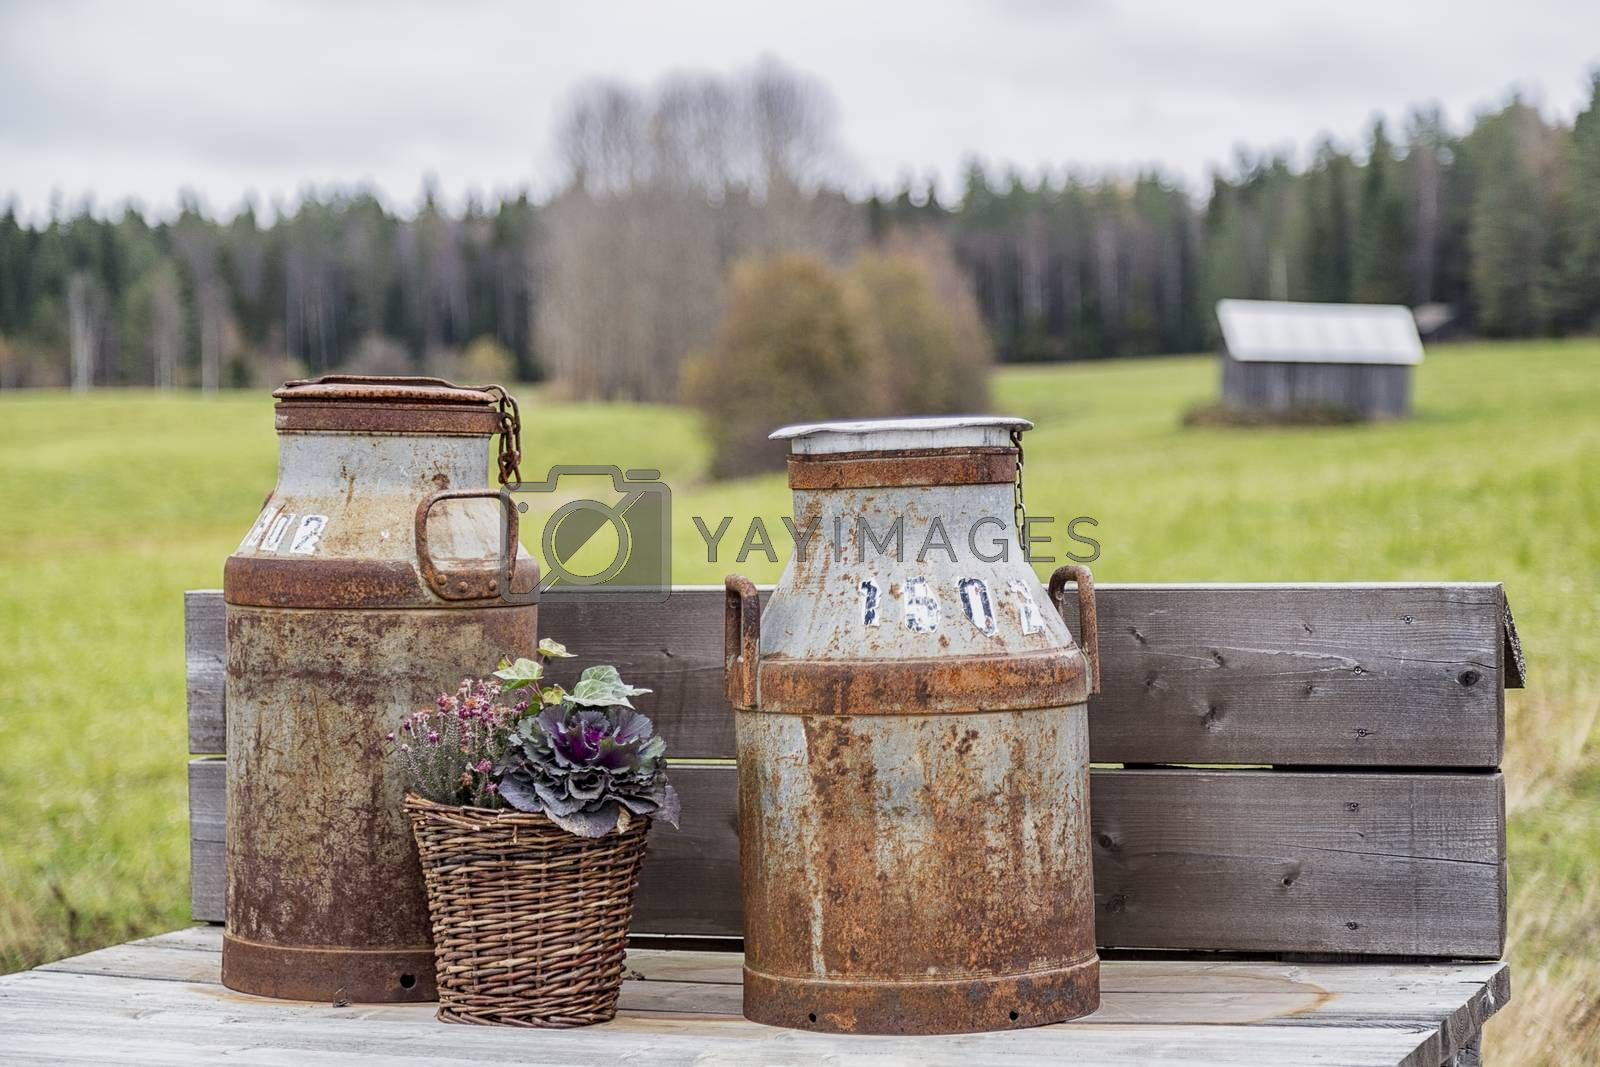 Old Milk Cans with barn in the background.